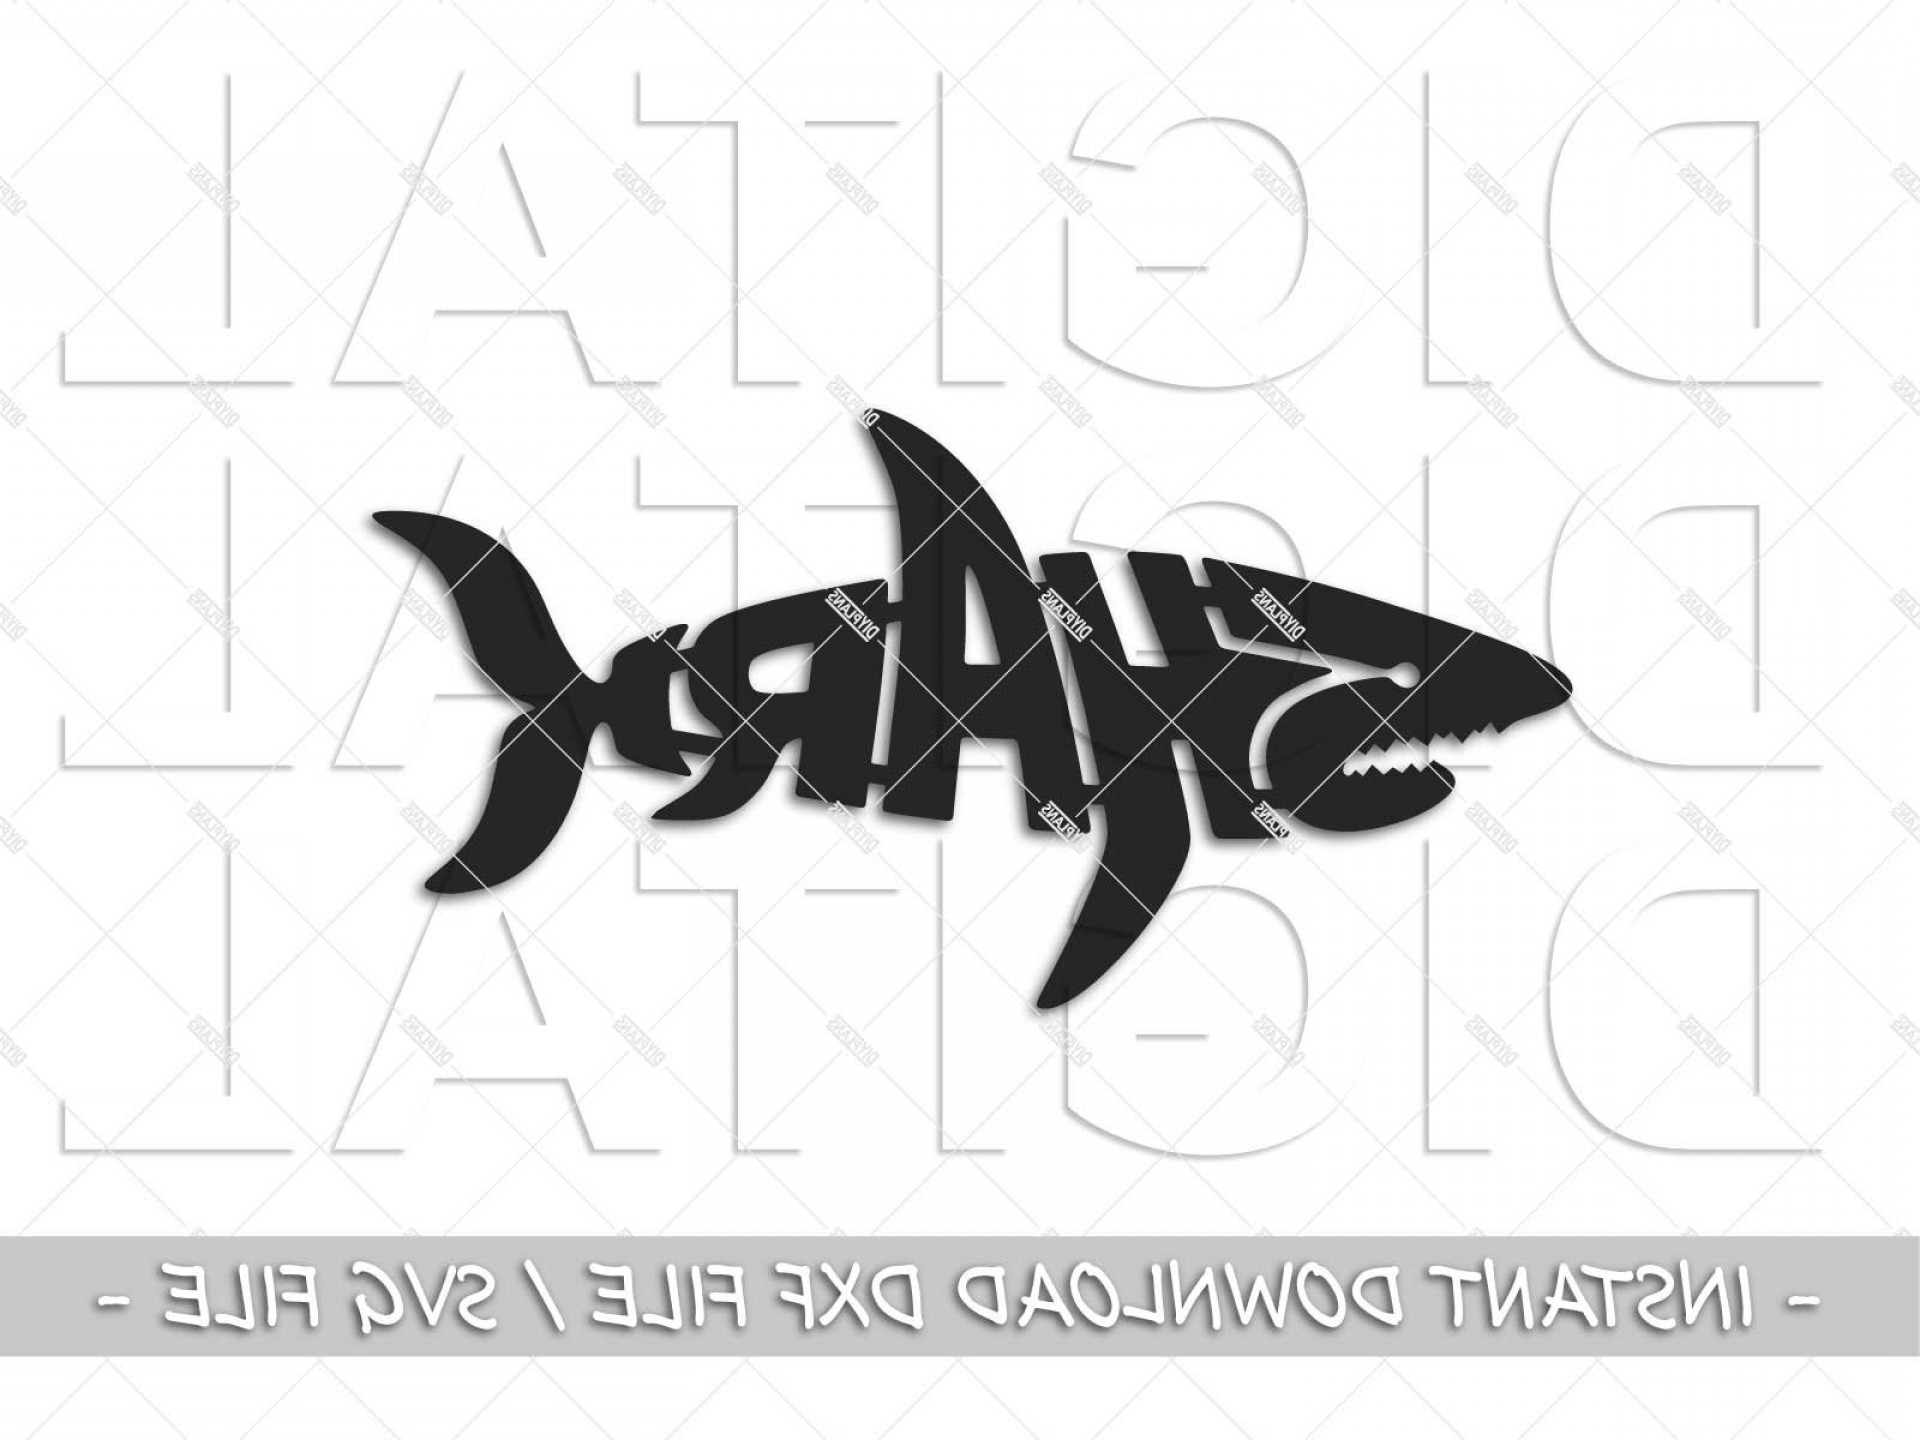 Plasma Art Fishing Vector Files: Shark Dxf File Cnc Plasma Laser Svg File